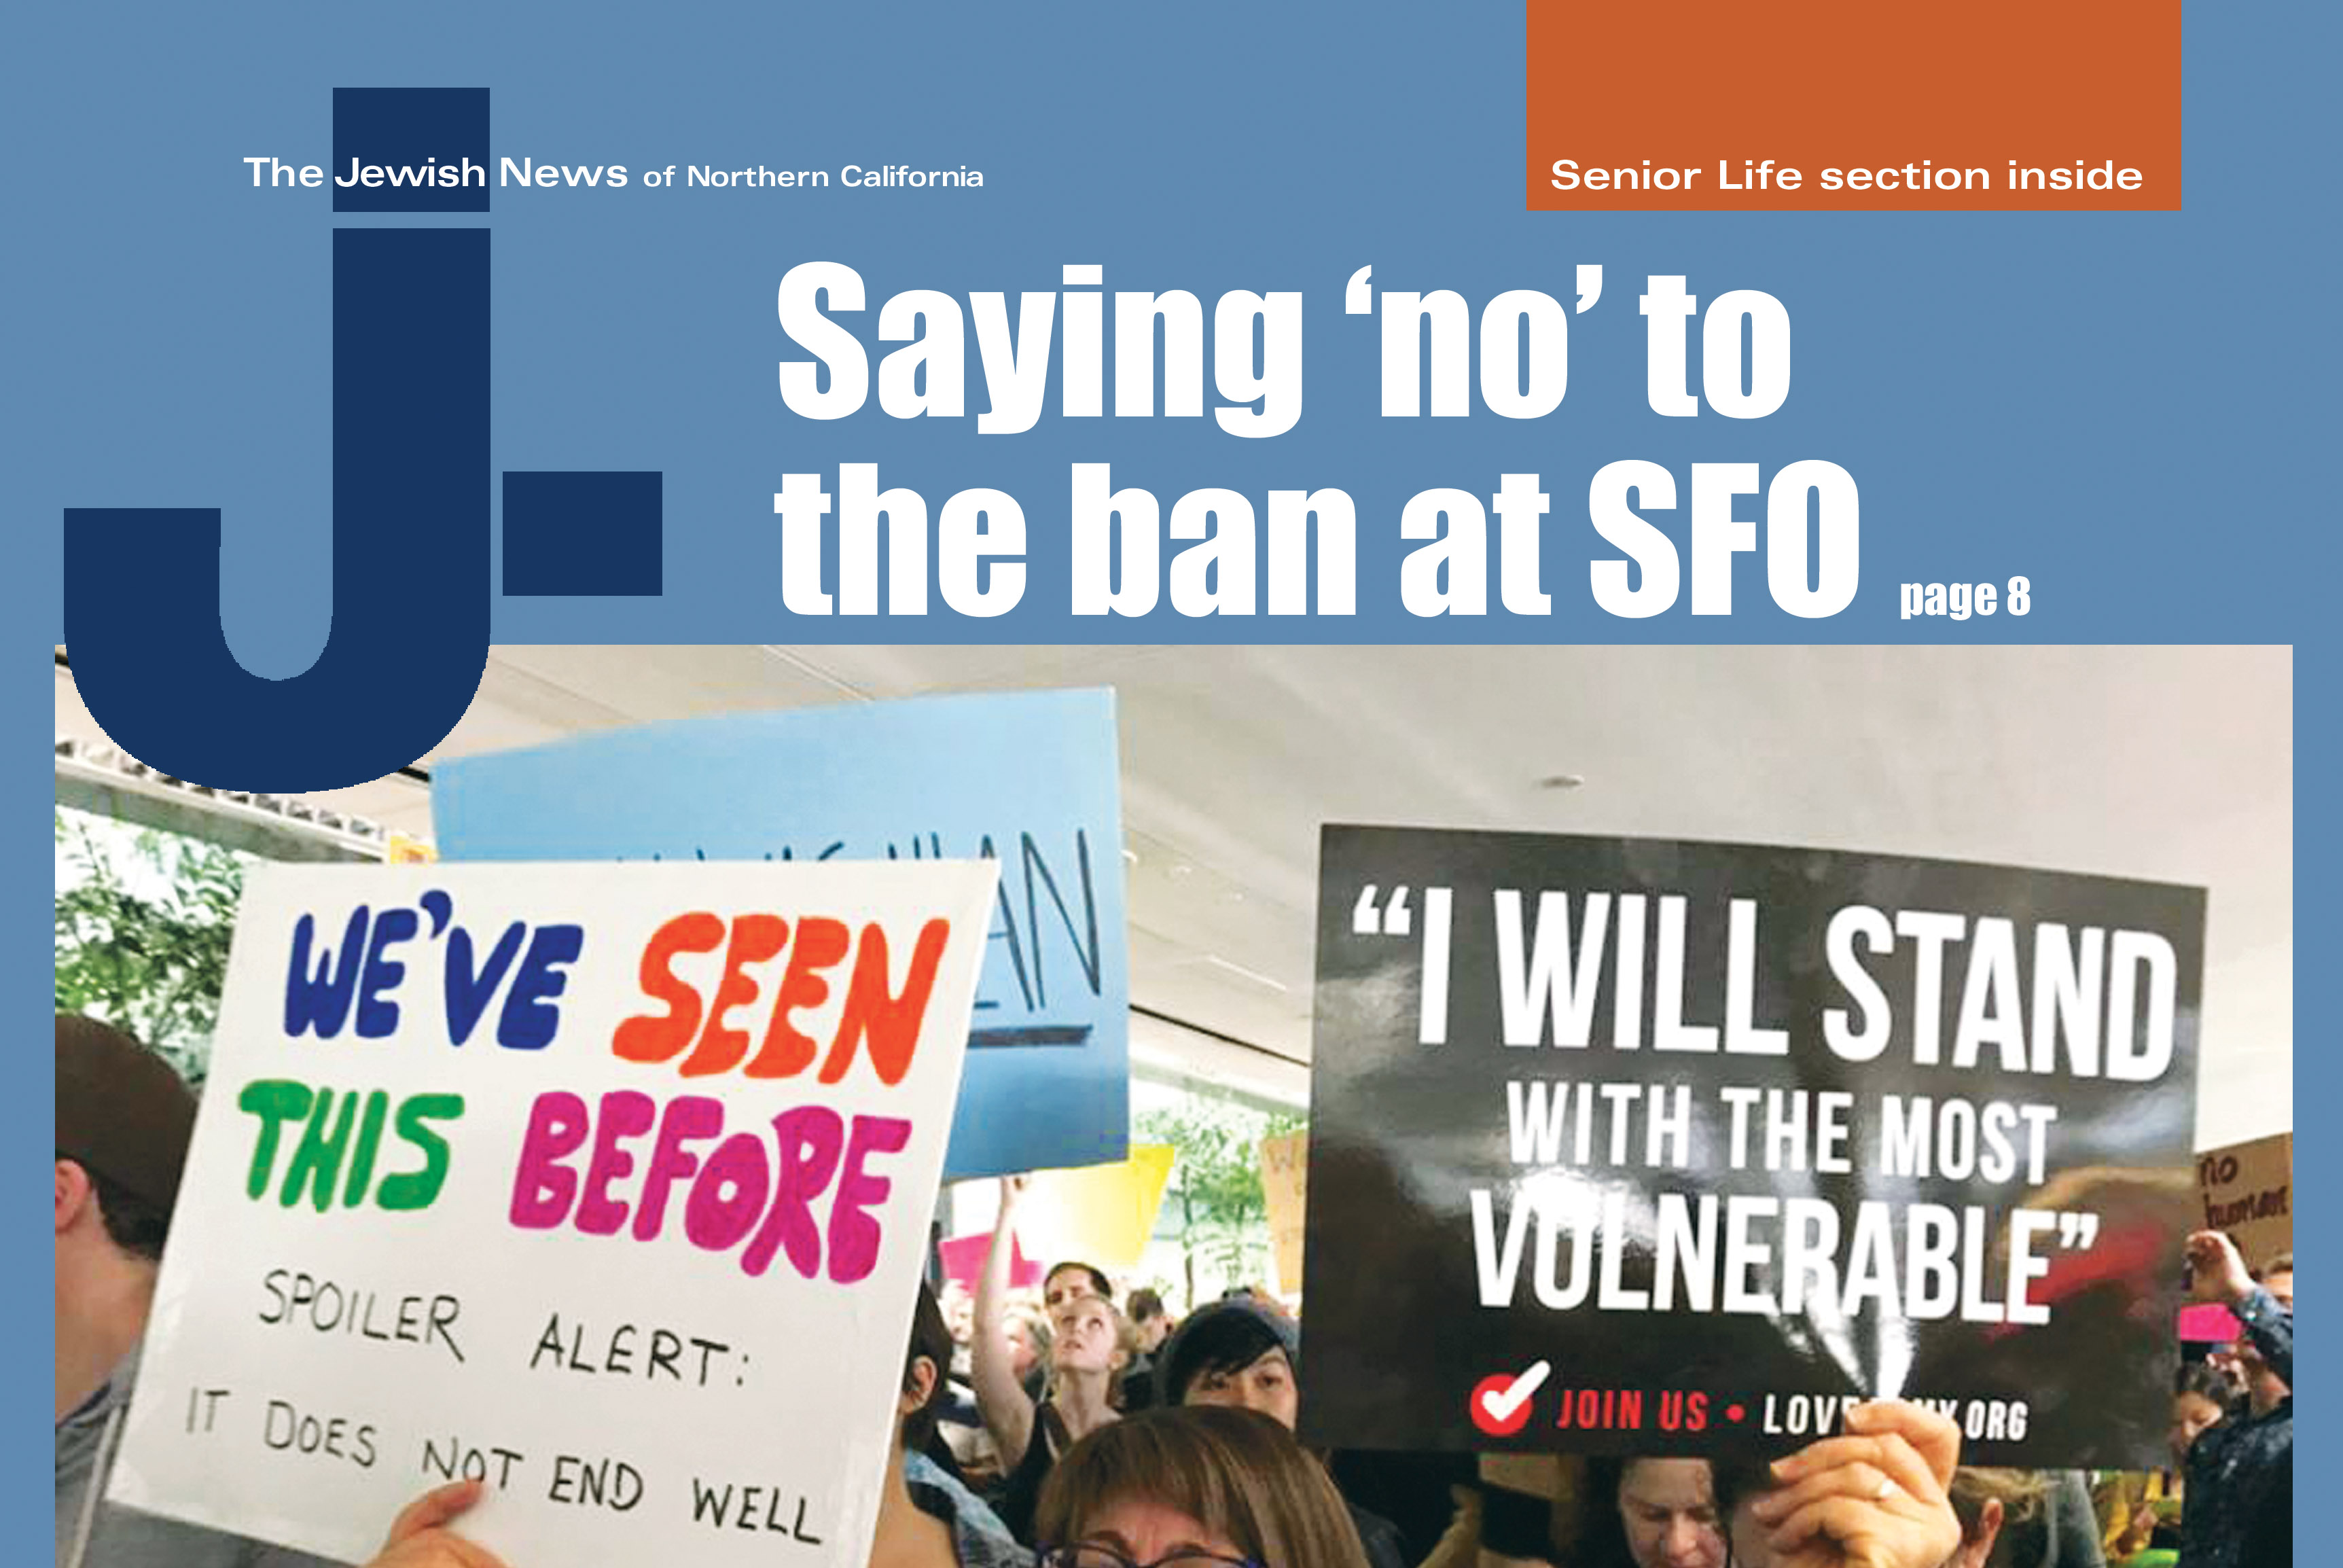 """cover art is a protester at SFO, headline: """"Saying no to the ban at SFO"""""""